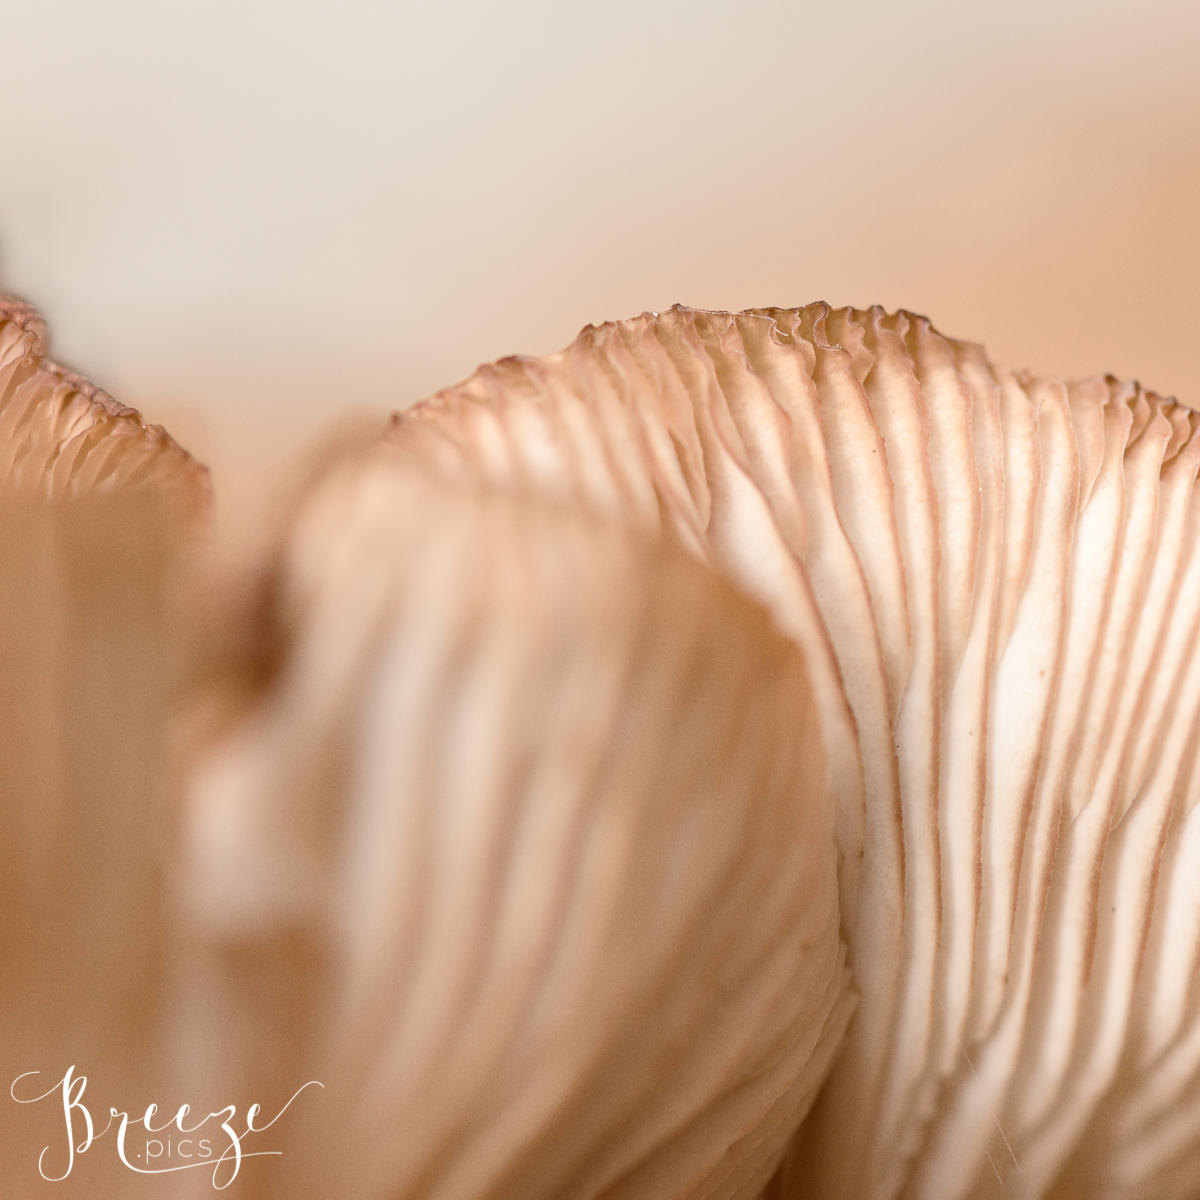 Autumn Macro Nature Photograph, Limited Edition Fine Art Print, Bernadette Meyers